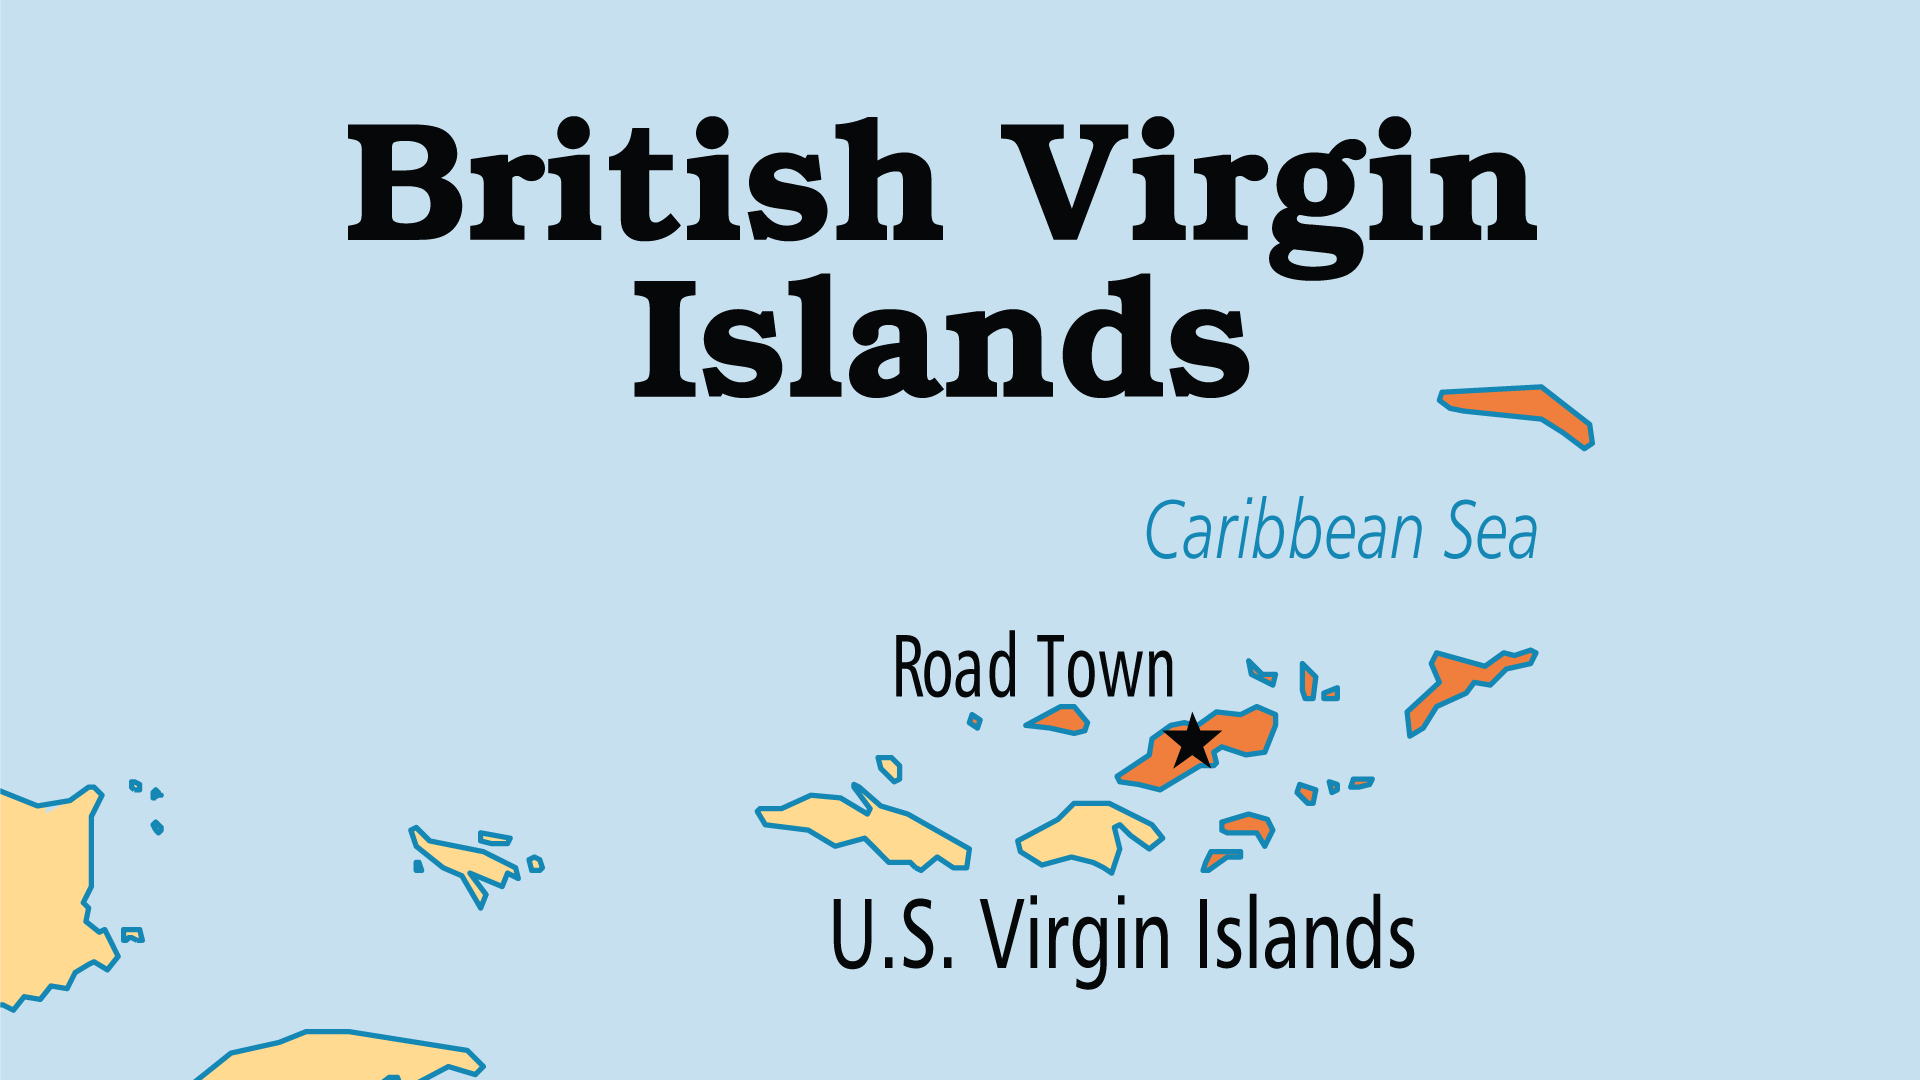 Map of British Virgin Islands